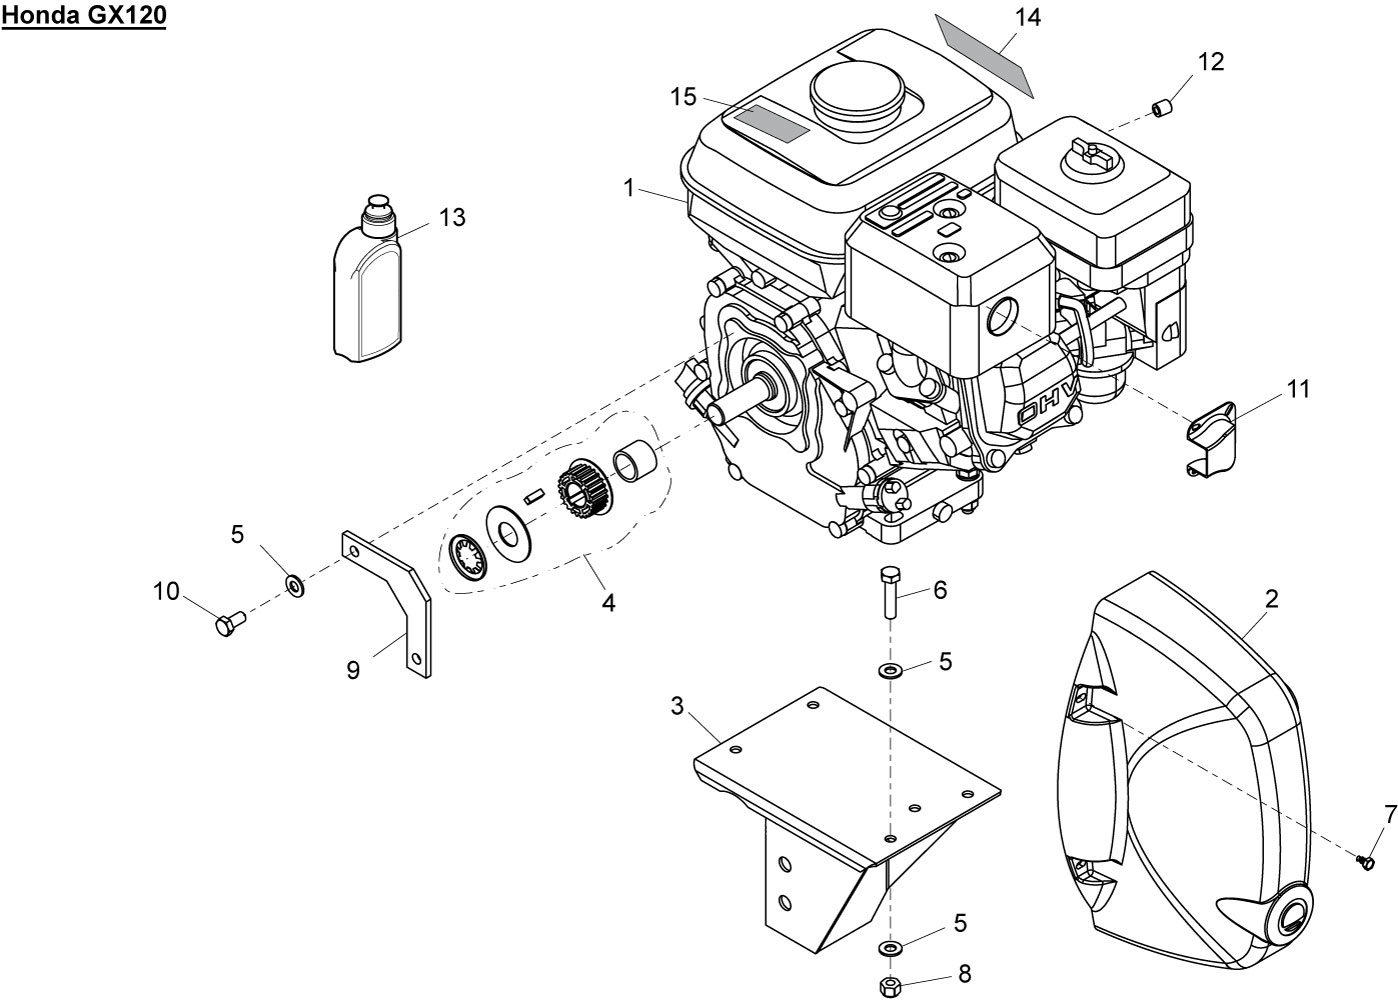 Honda Gc190 Carburetor Diagram likewise Honda Rebel Wiring Diagram Voltage Regulator additionally  together with Honda Lawnmower Parts Diagram additionally Honda Engine Gx35 Parts Diagram. on honda gx240 wiring diagram